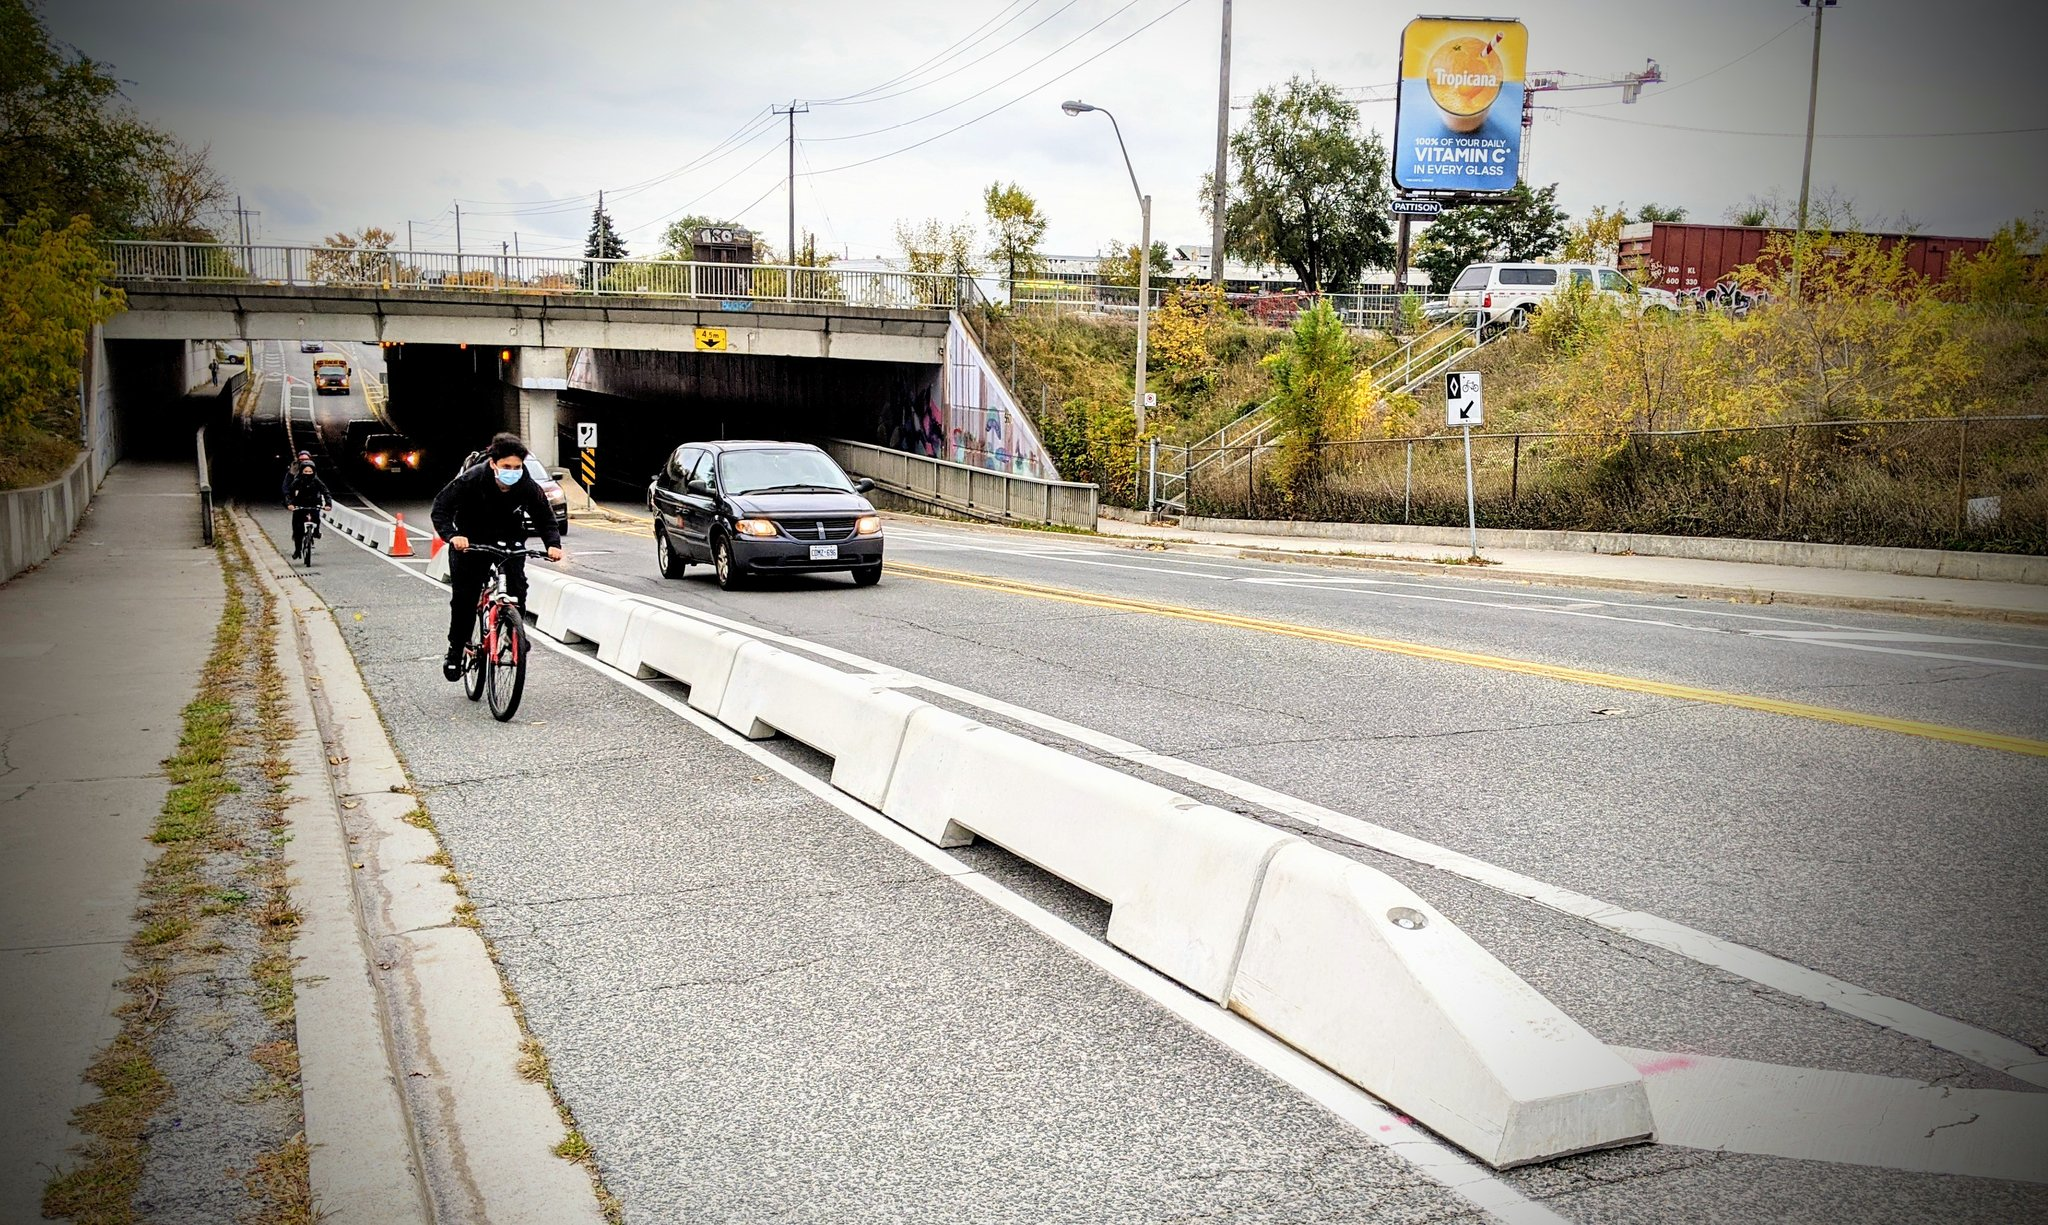 Newly installed barriers separate bike riders from cars at a rail underpass.